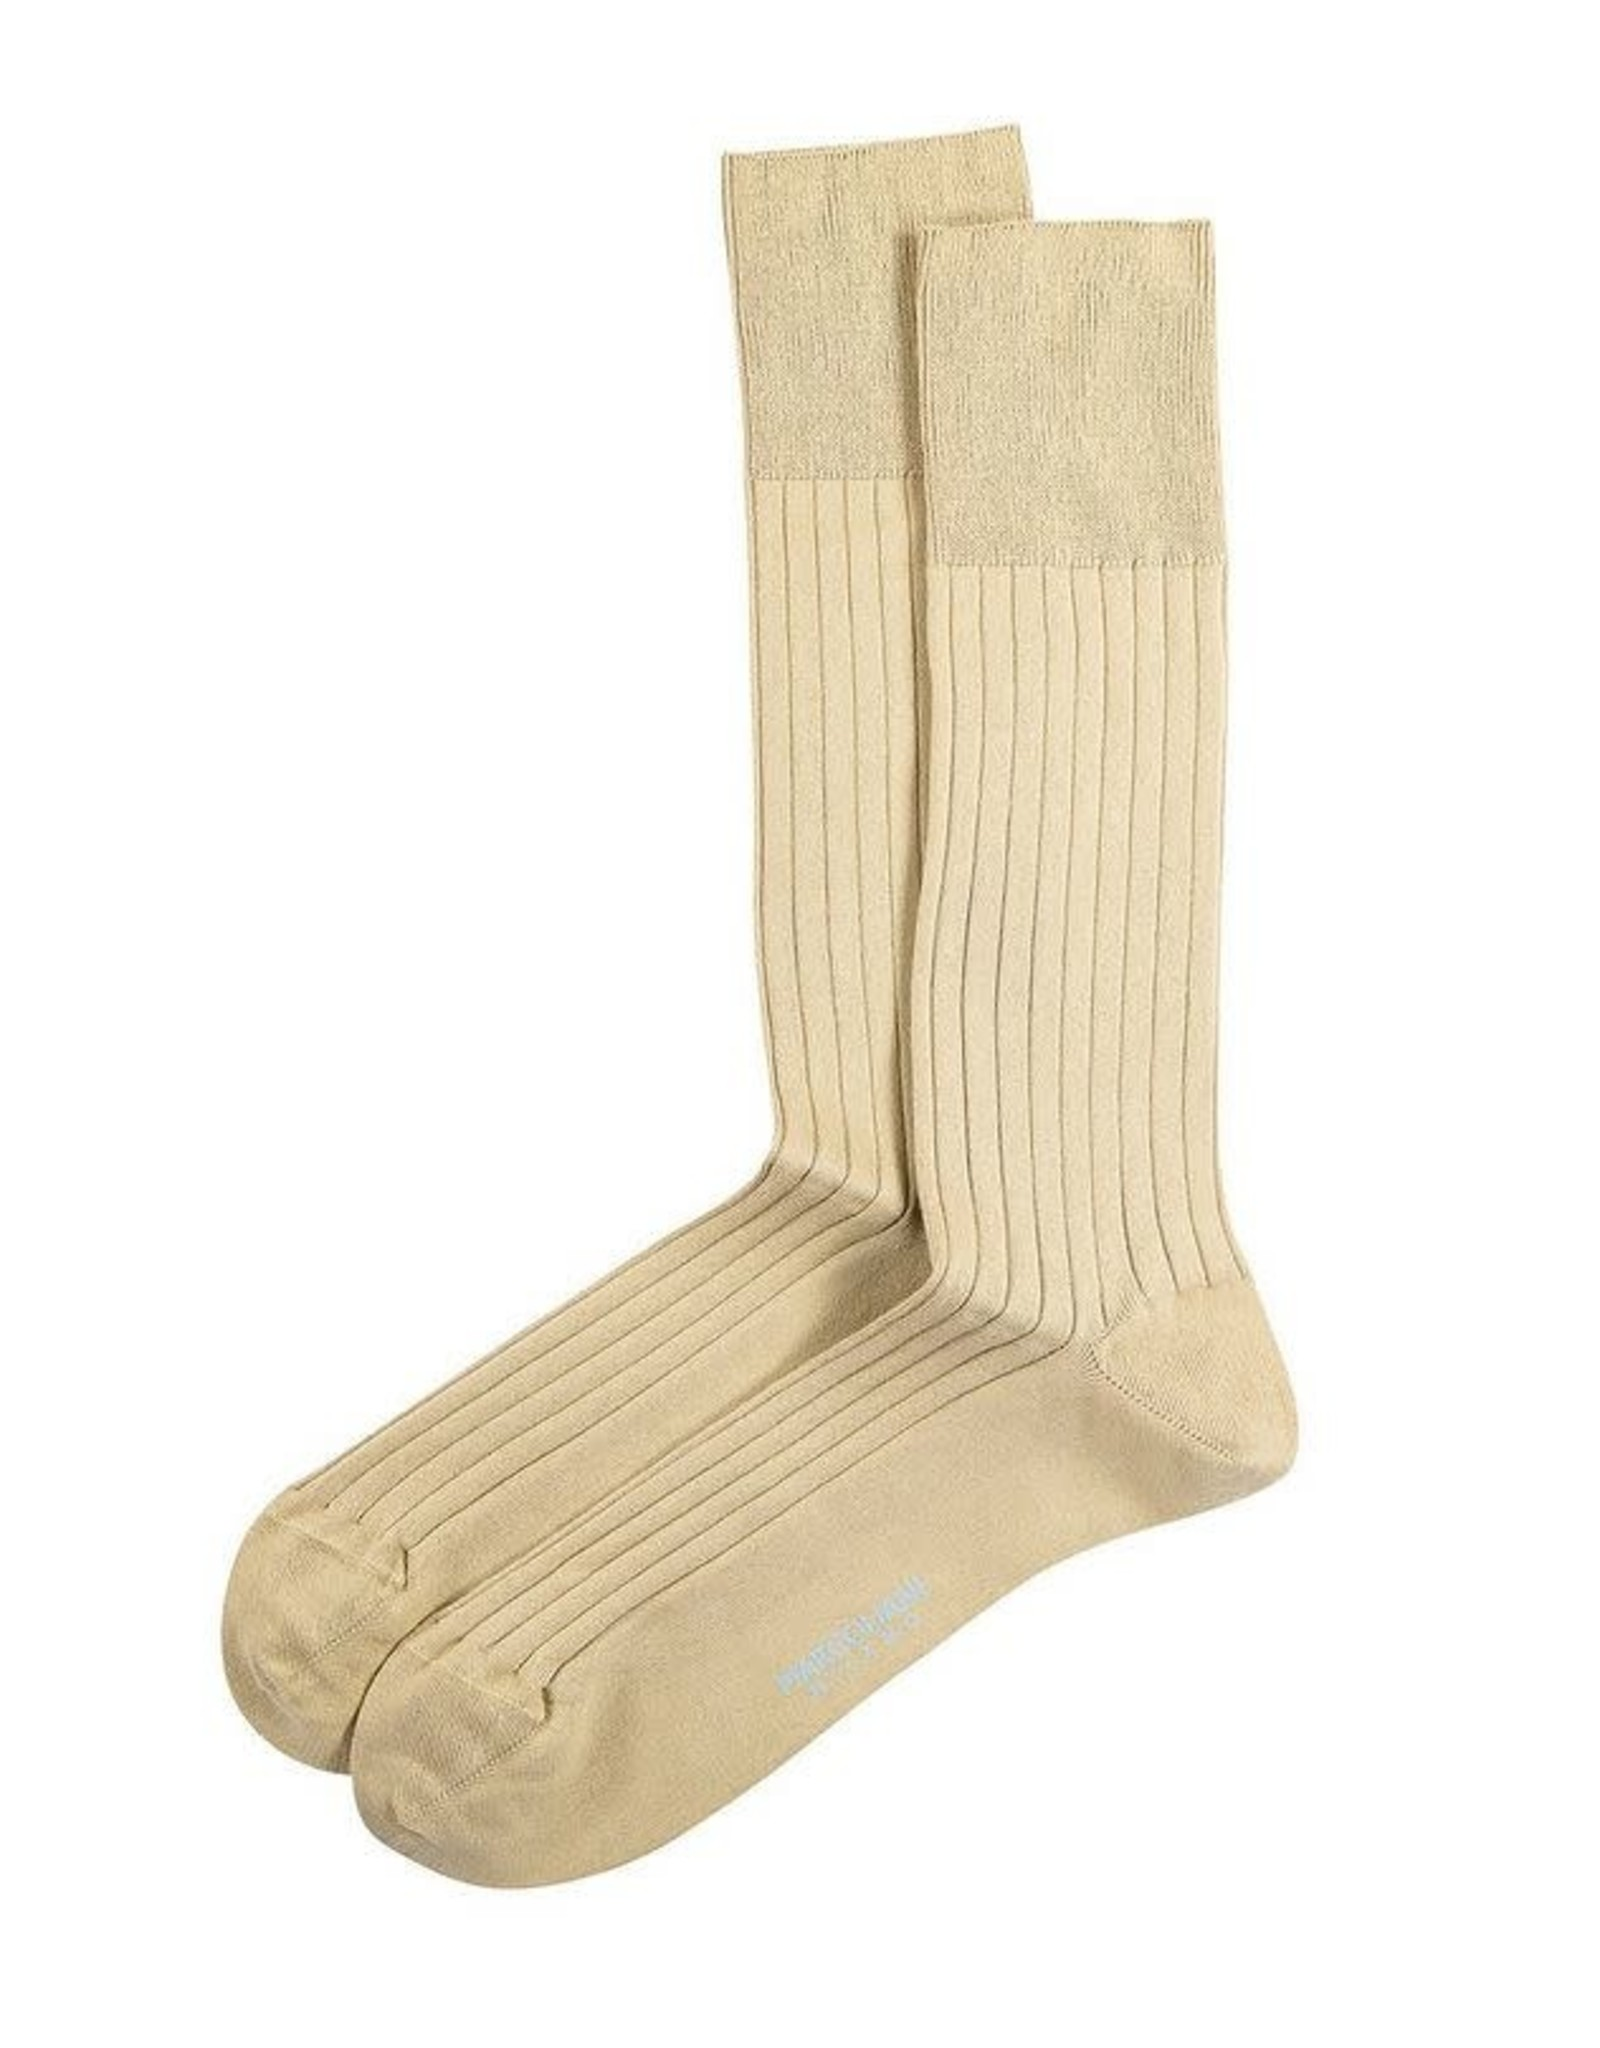 Marcoliani Marcoliani Soft Touch Socks